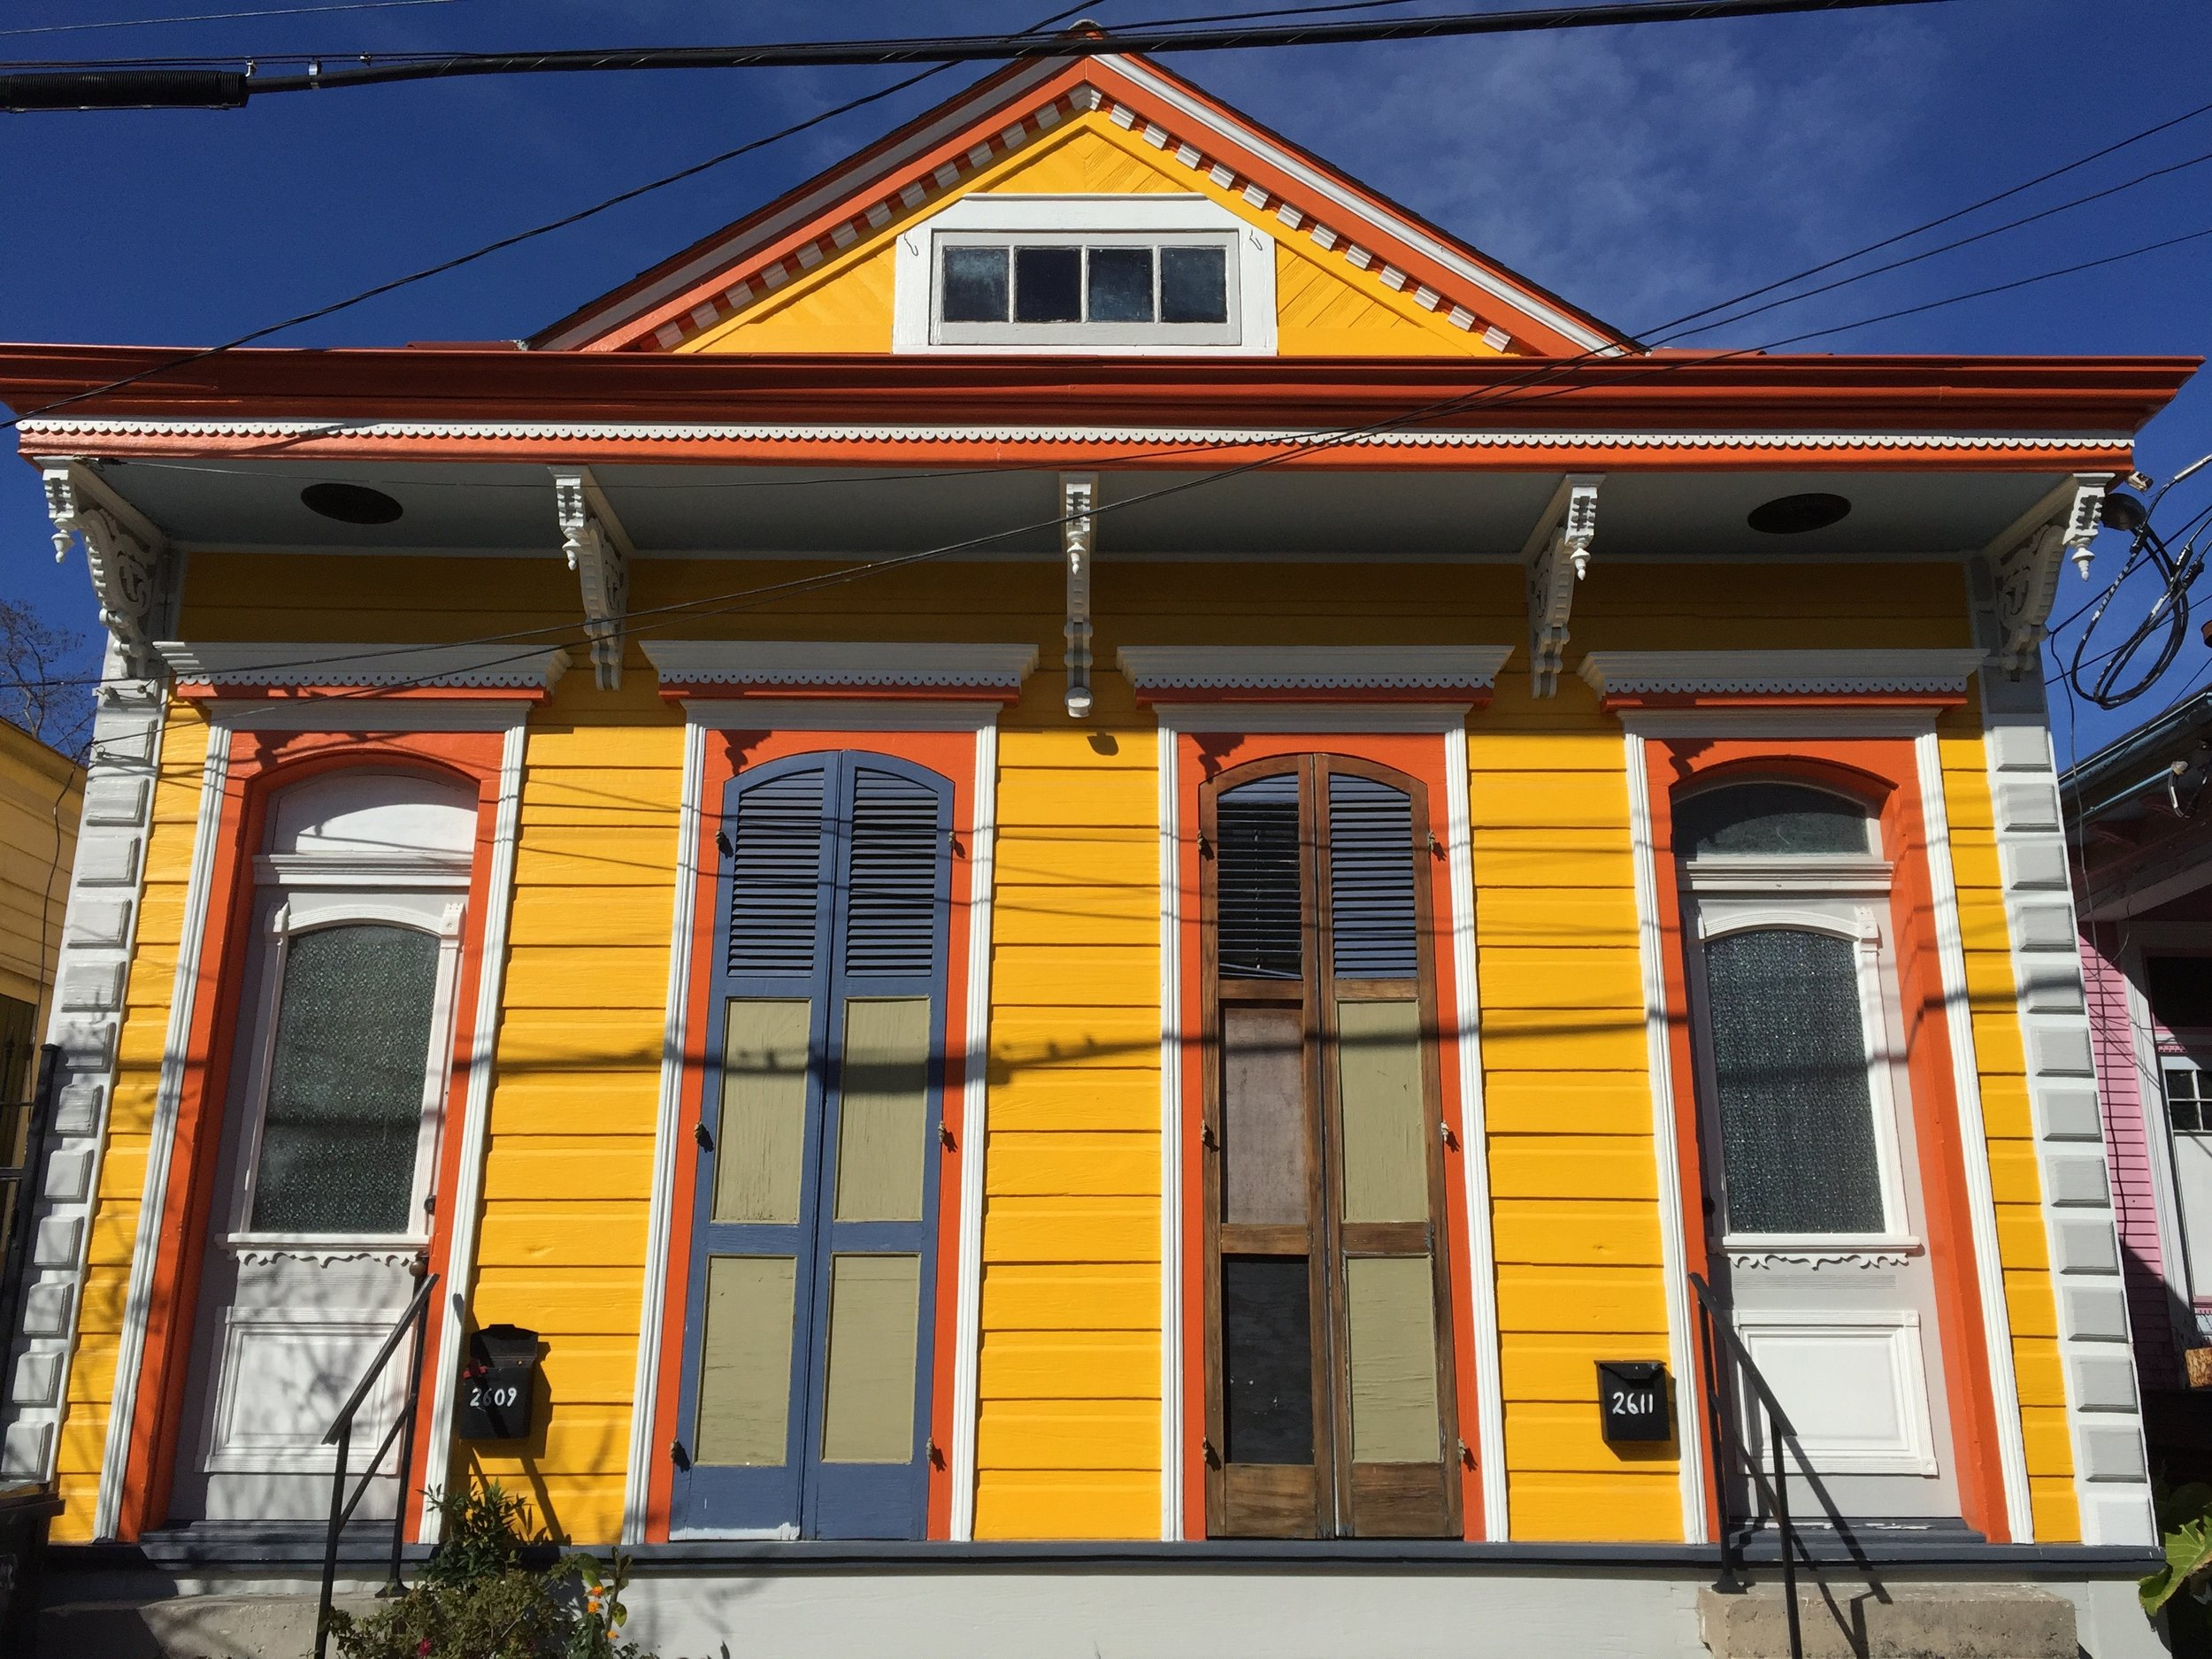 nola bright home.jpg